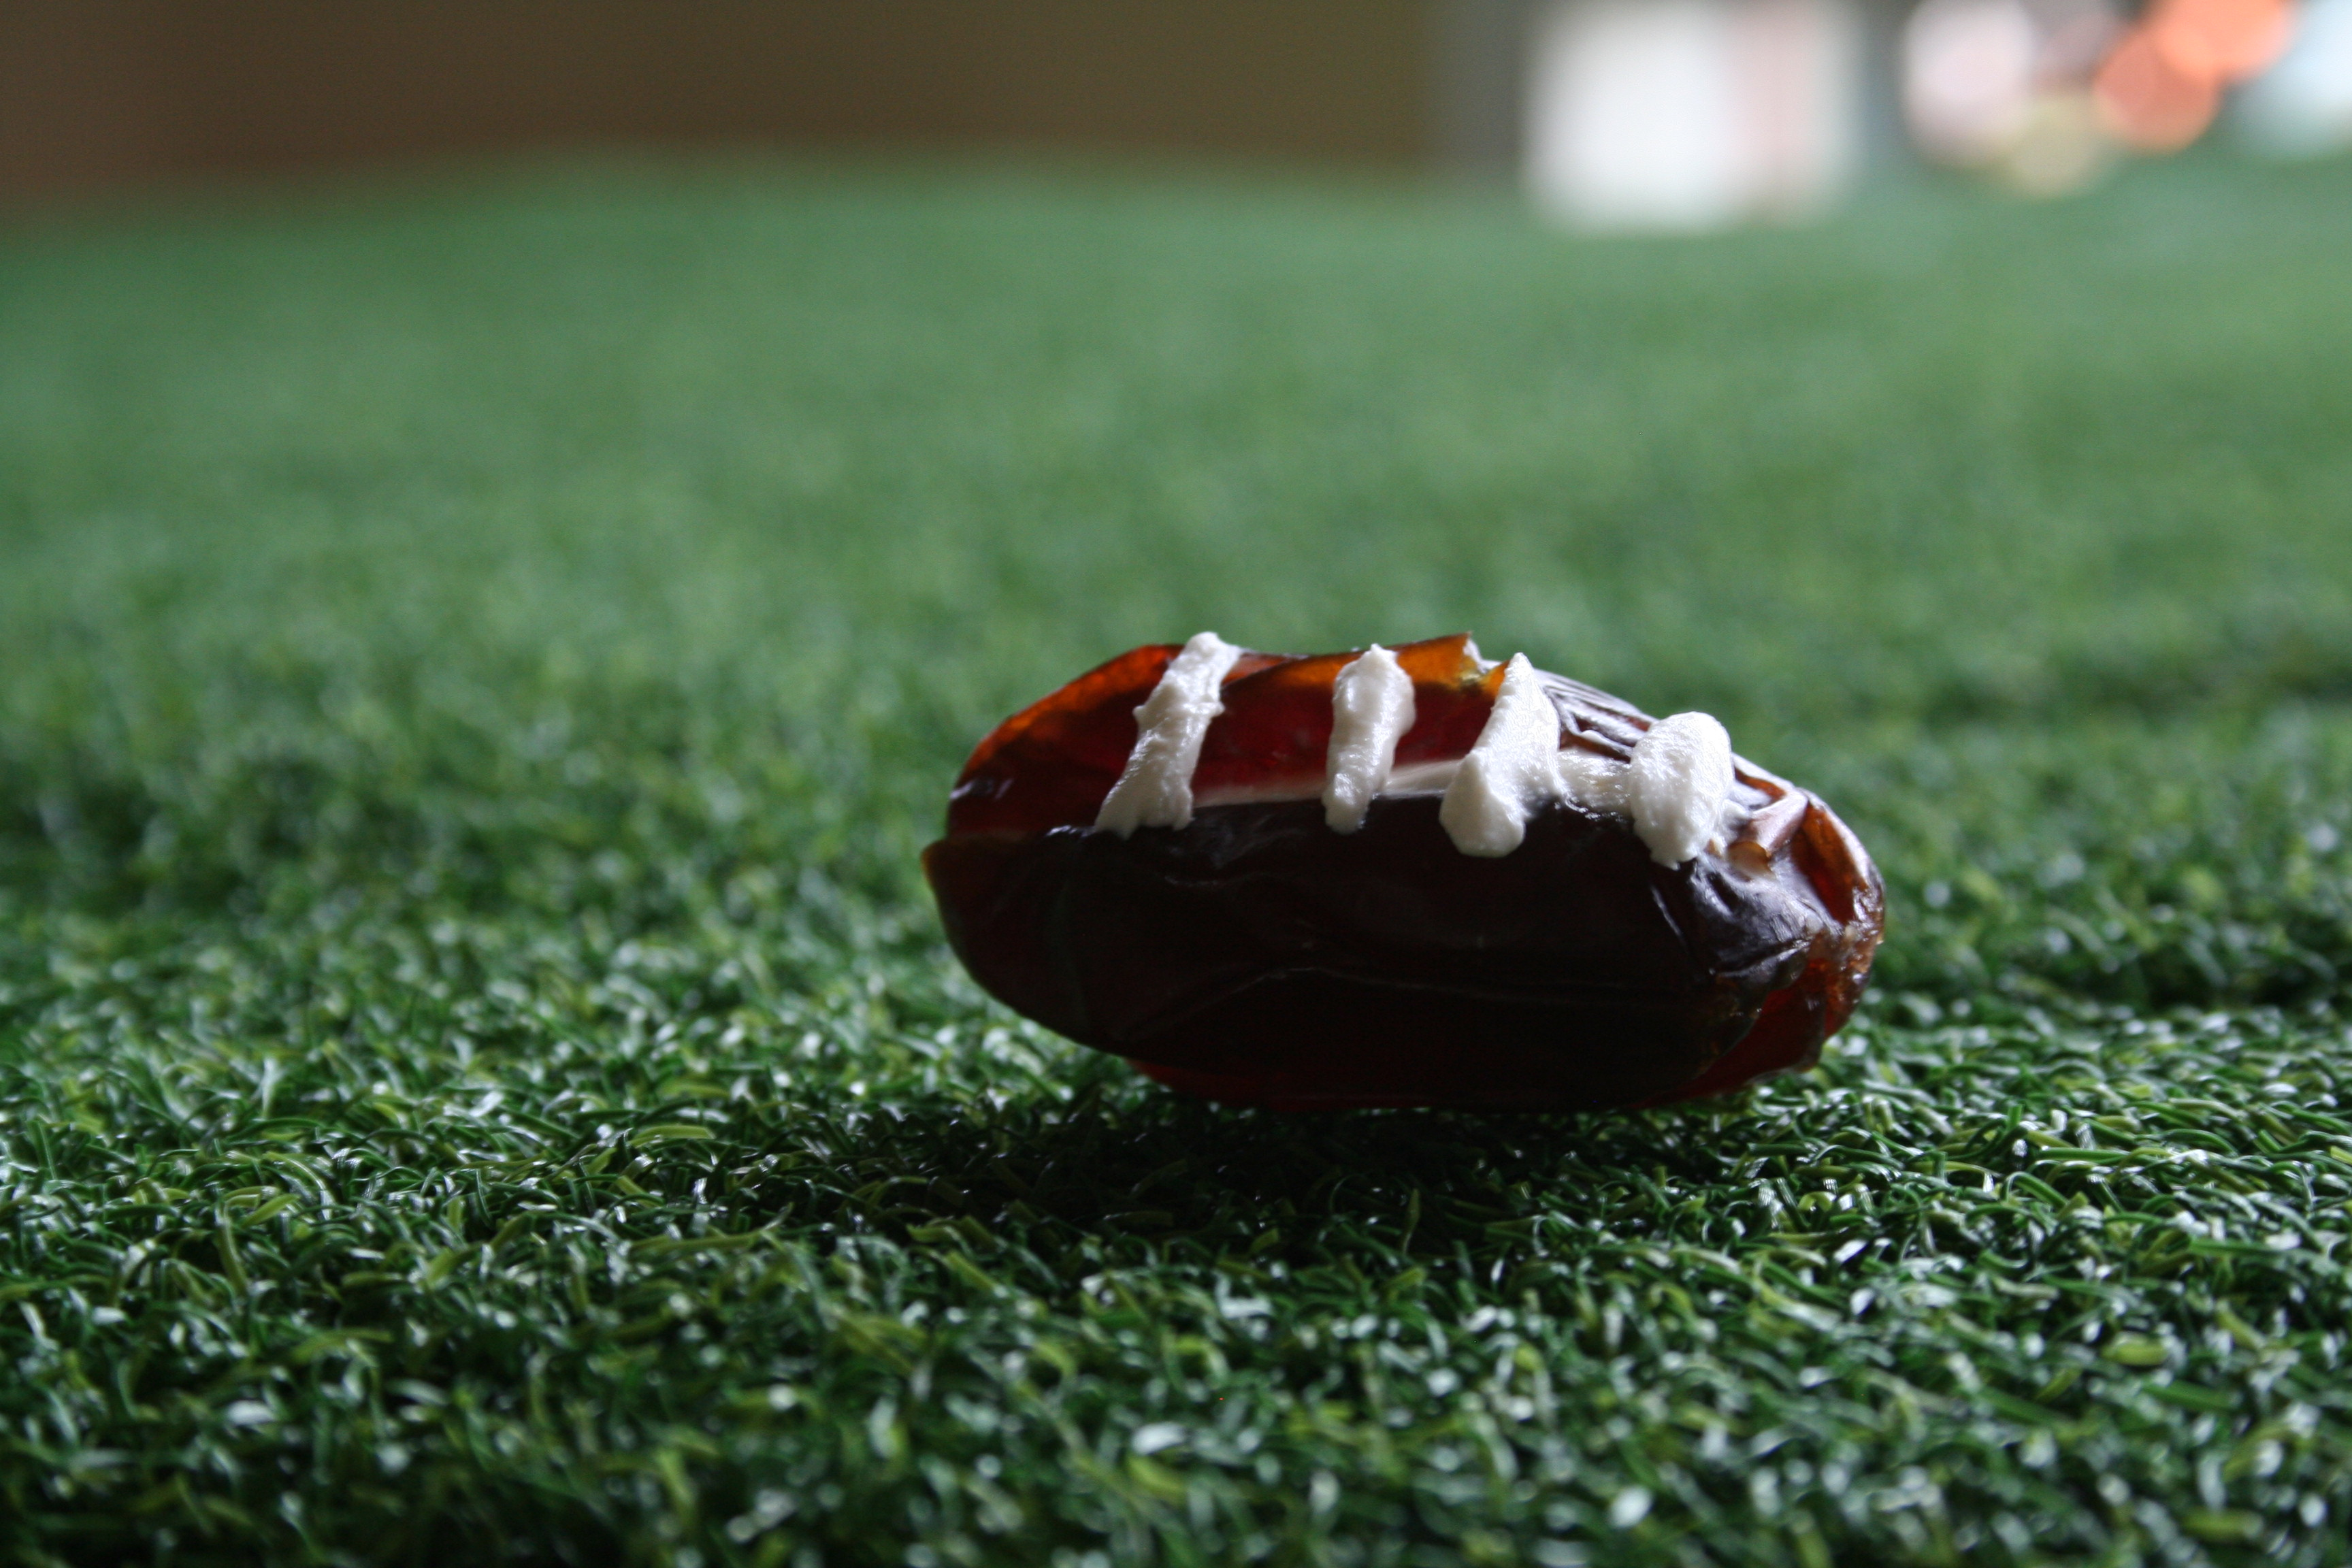 Stuffed Date Football close up on artificial grass.